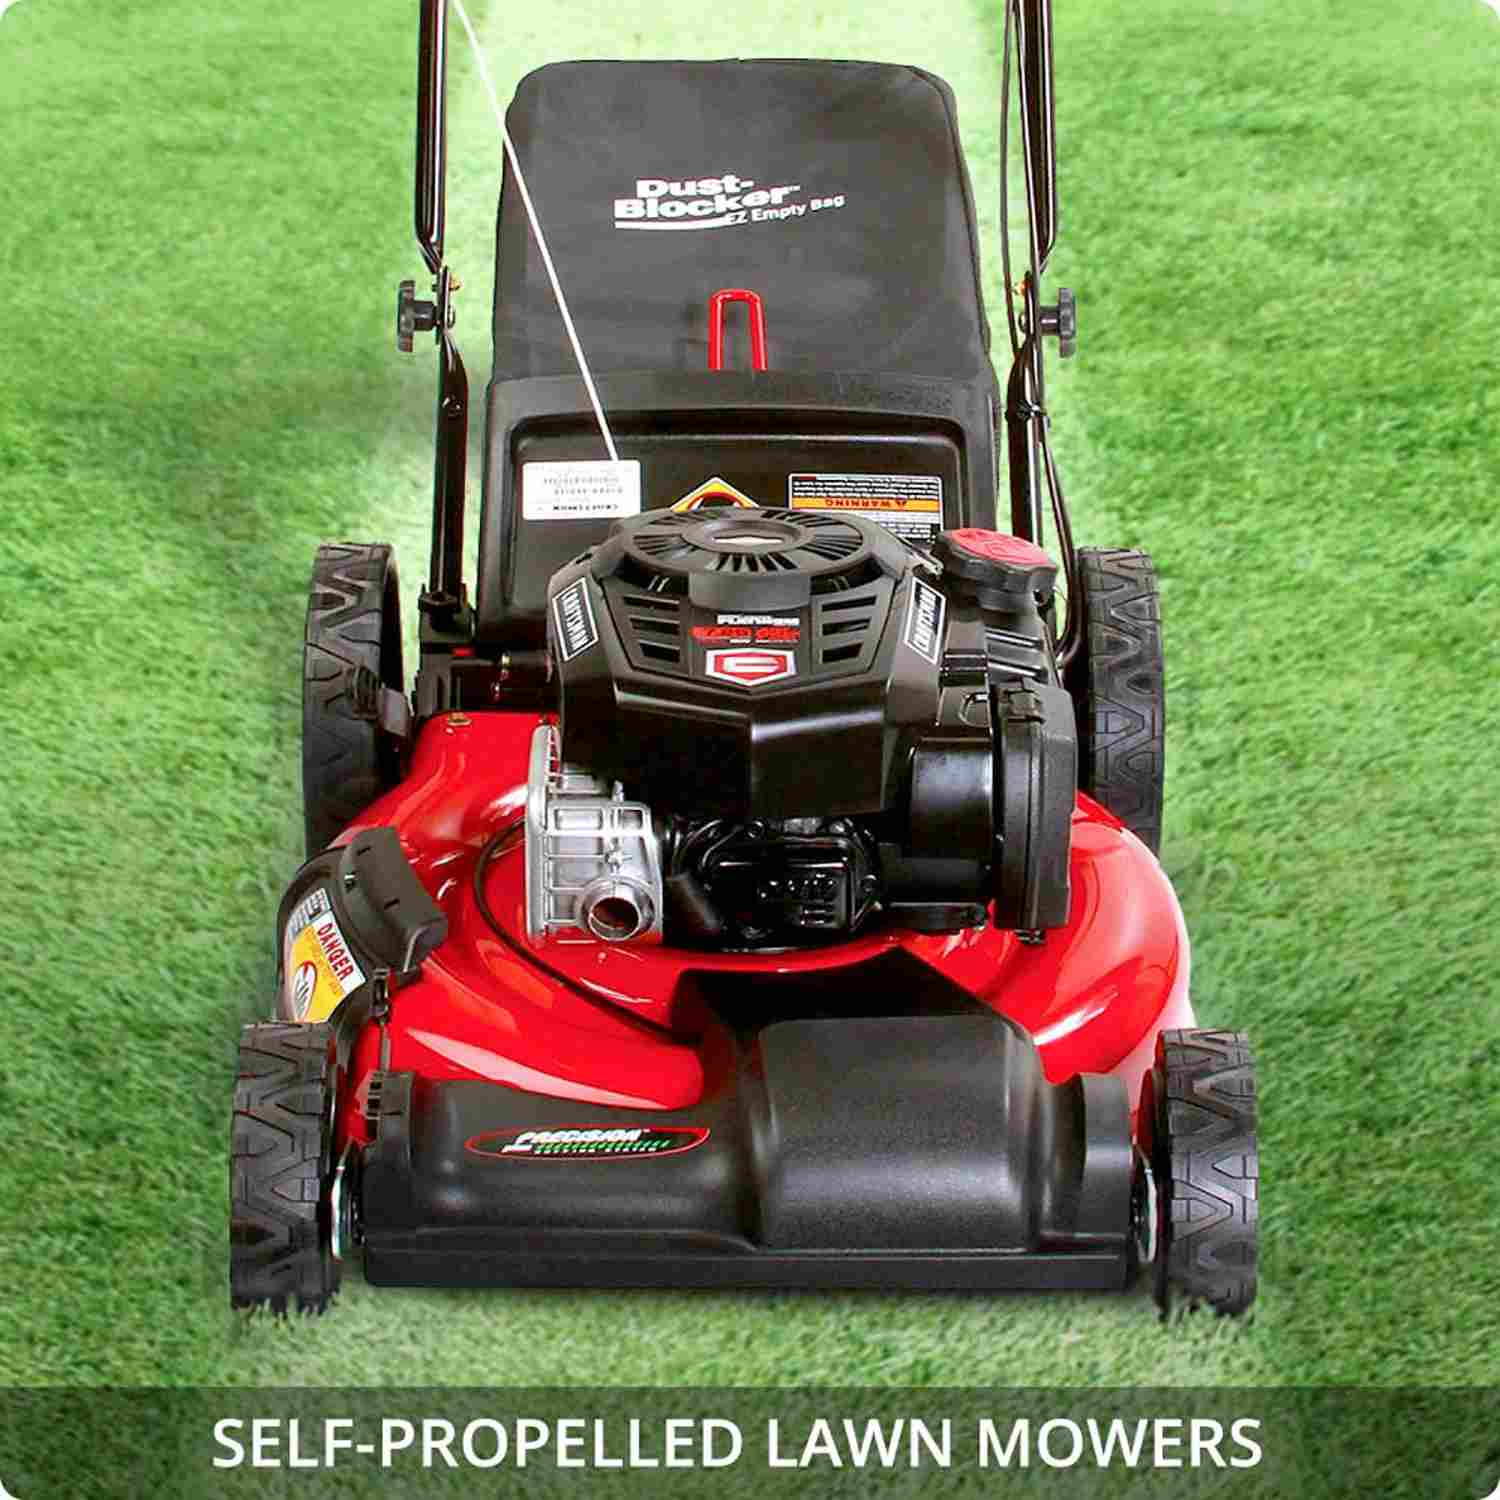 Shop Self-Propelled Lawn Mowers